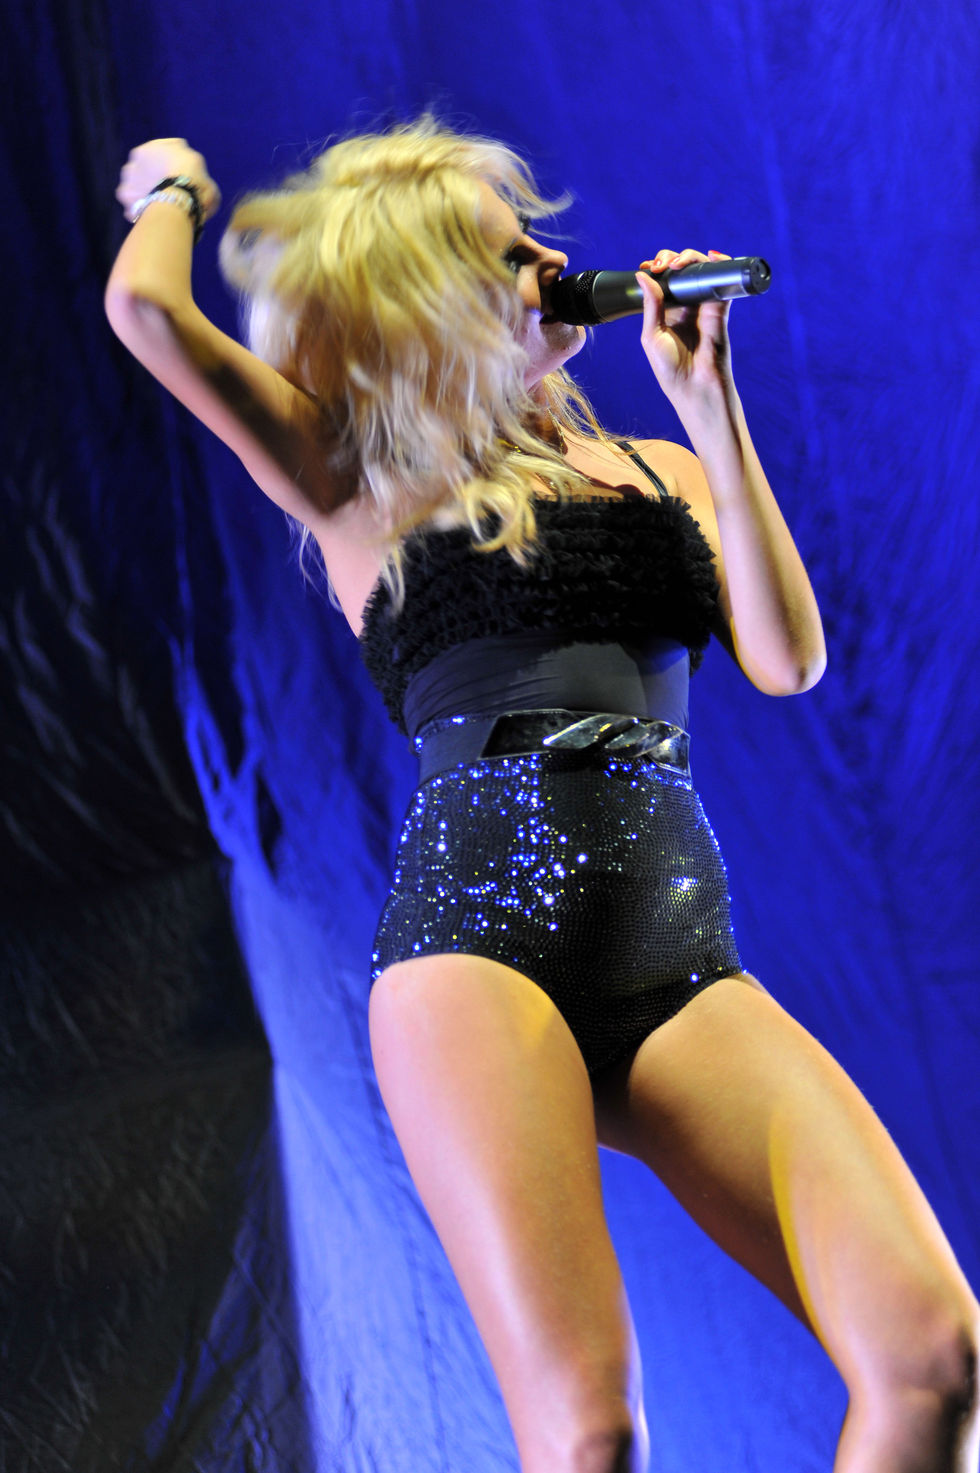 pixie-lott-performs-at-hammersmith-apollo-in-london-01